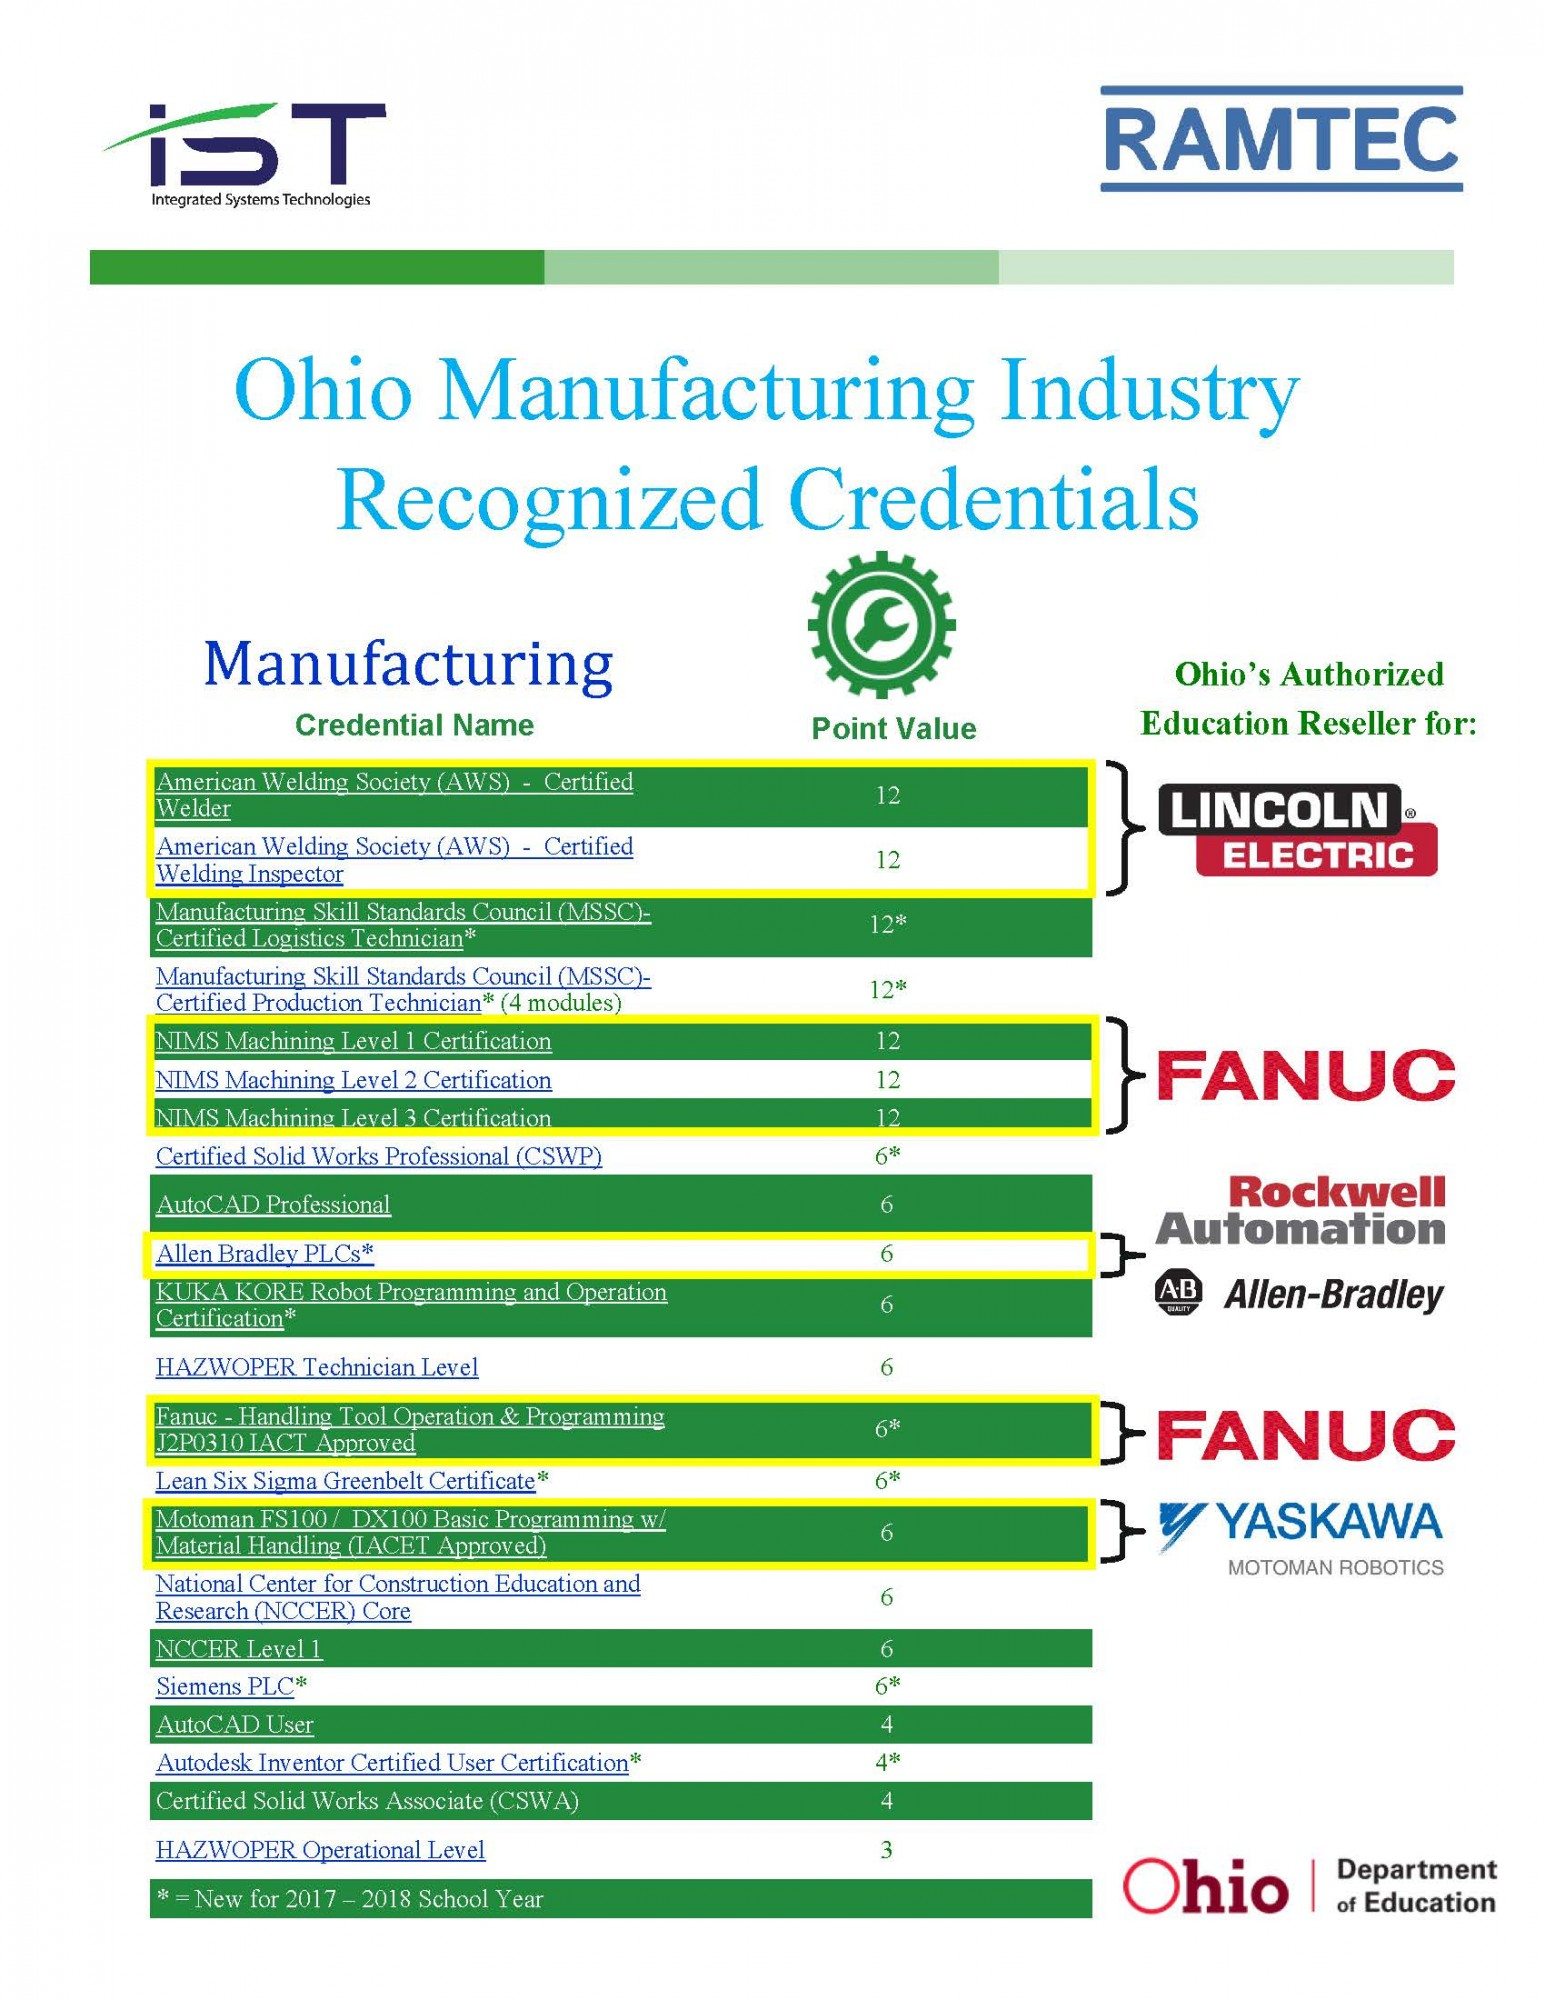 Ohio Integrated Systems Technologies